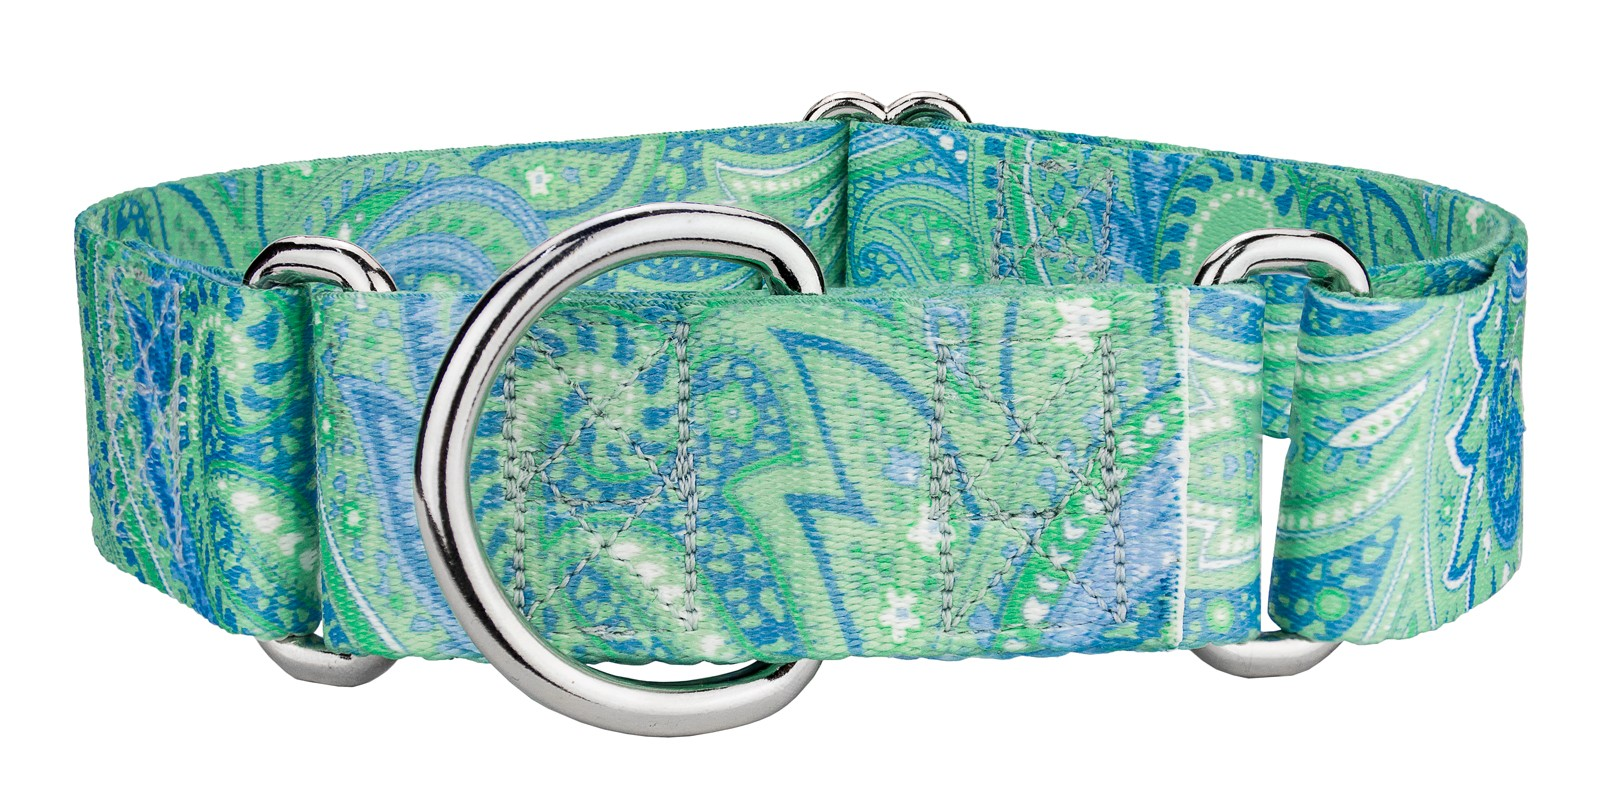 50 1 12 inch green paisley martingale collars